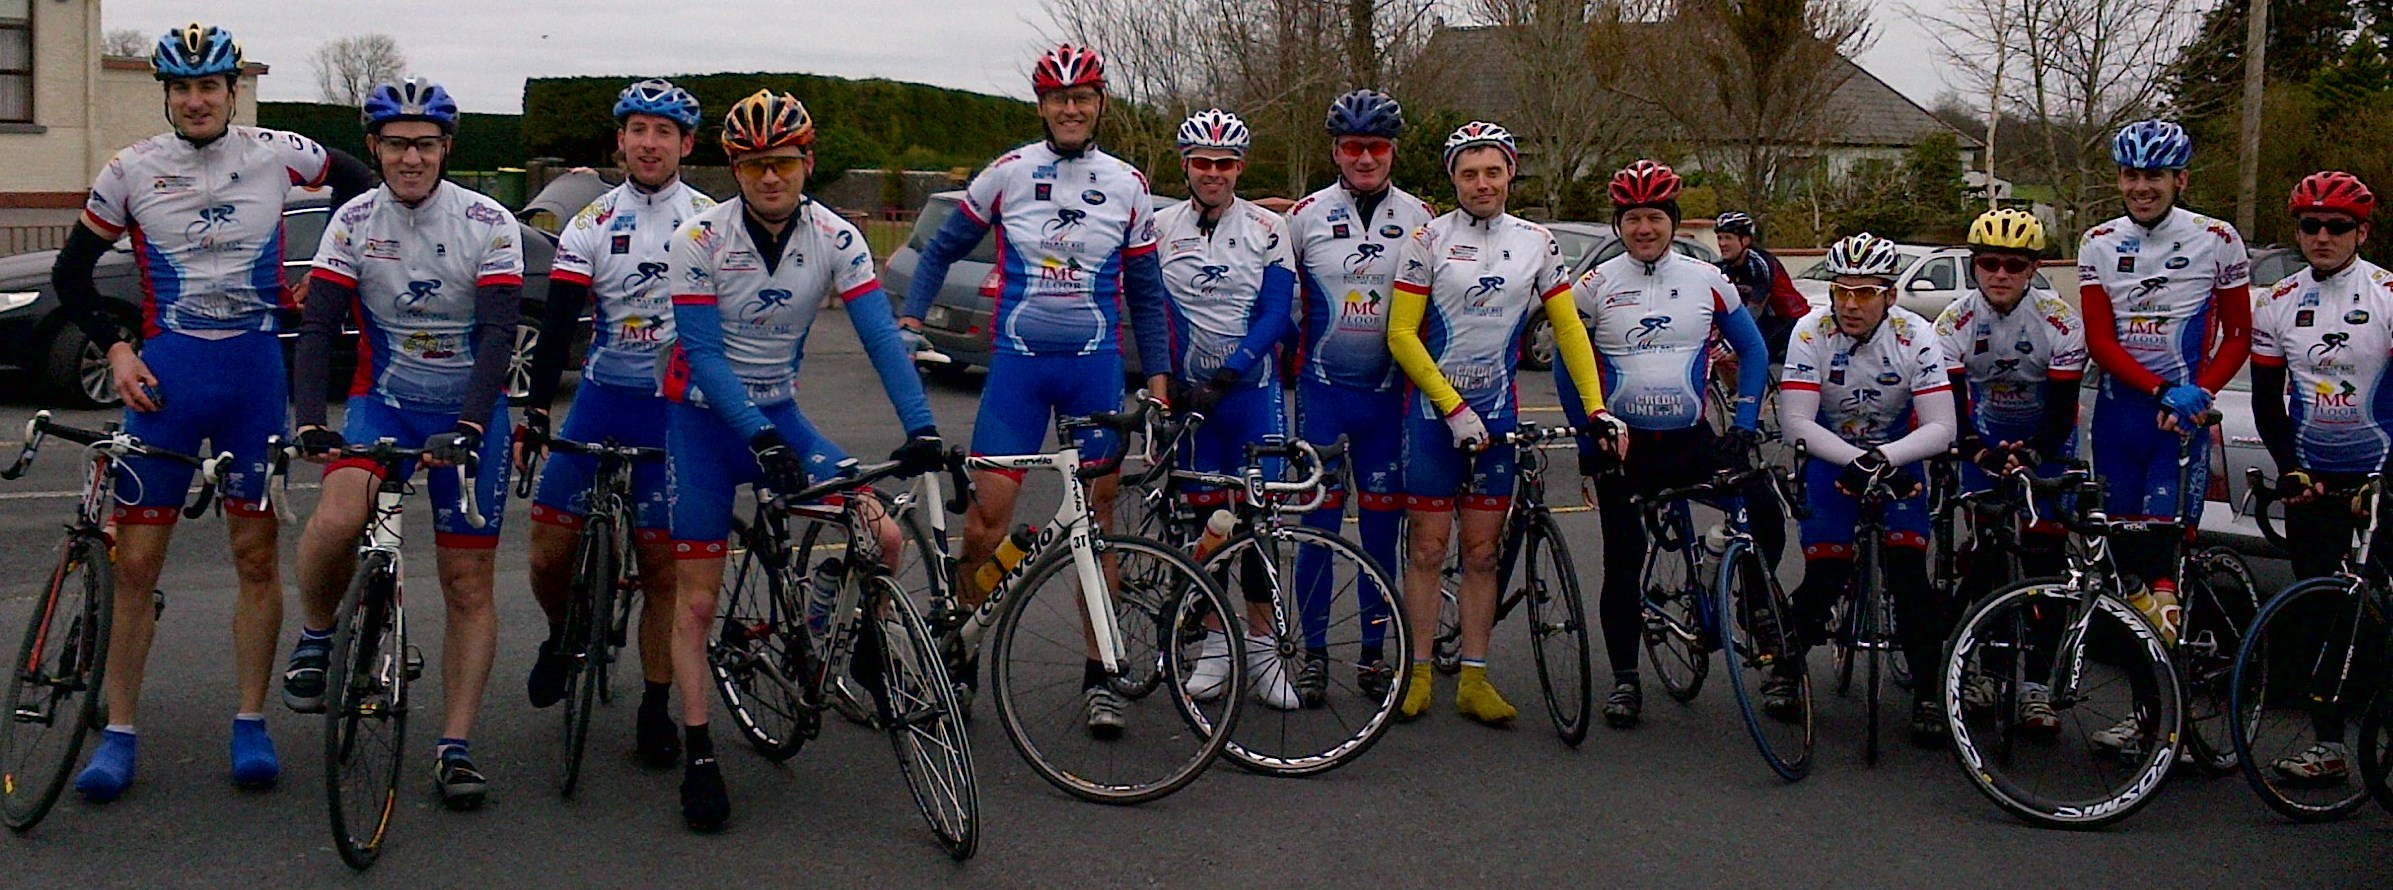 Galway bay champs this sunday galway bay cycling rubansaba